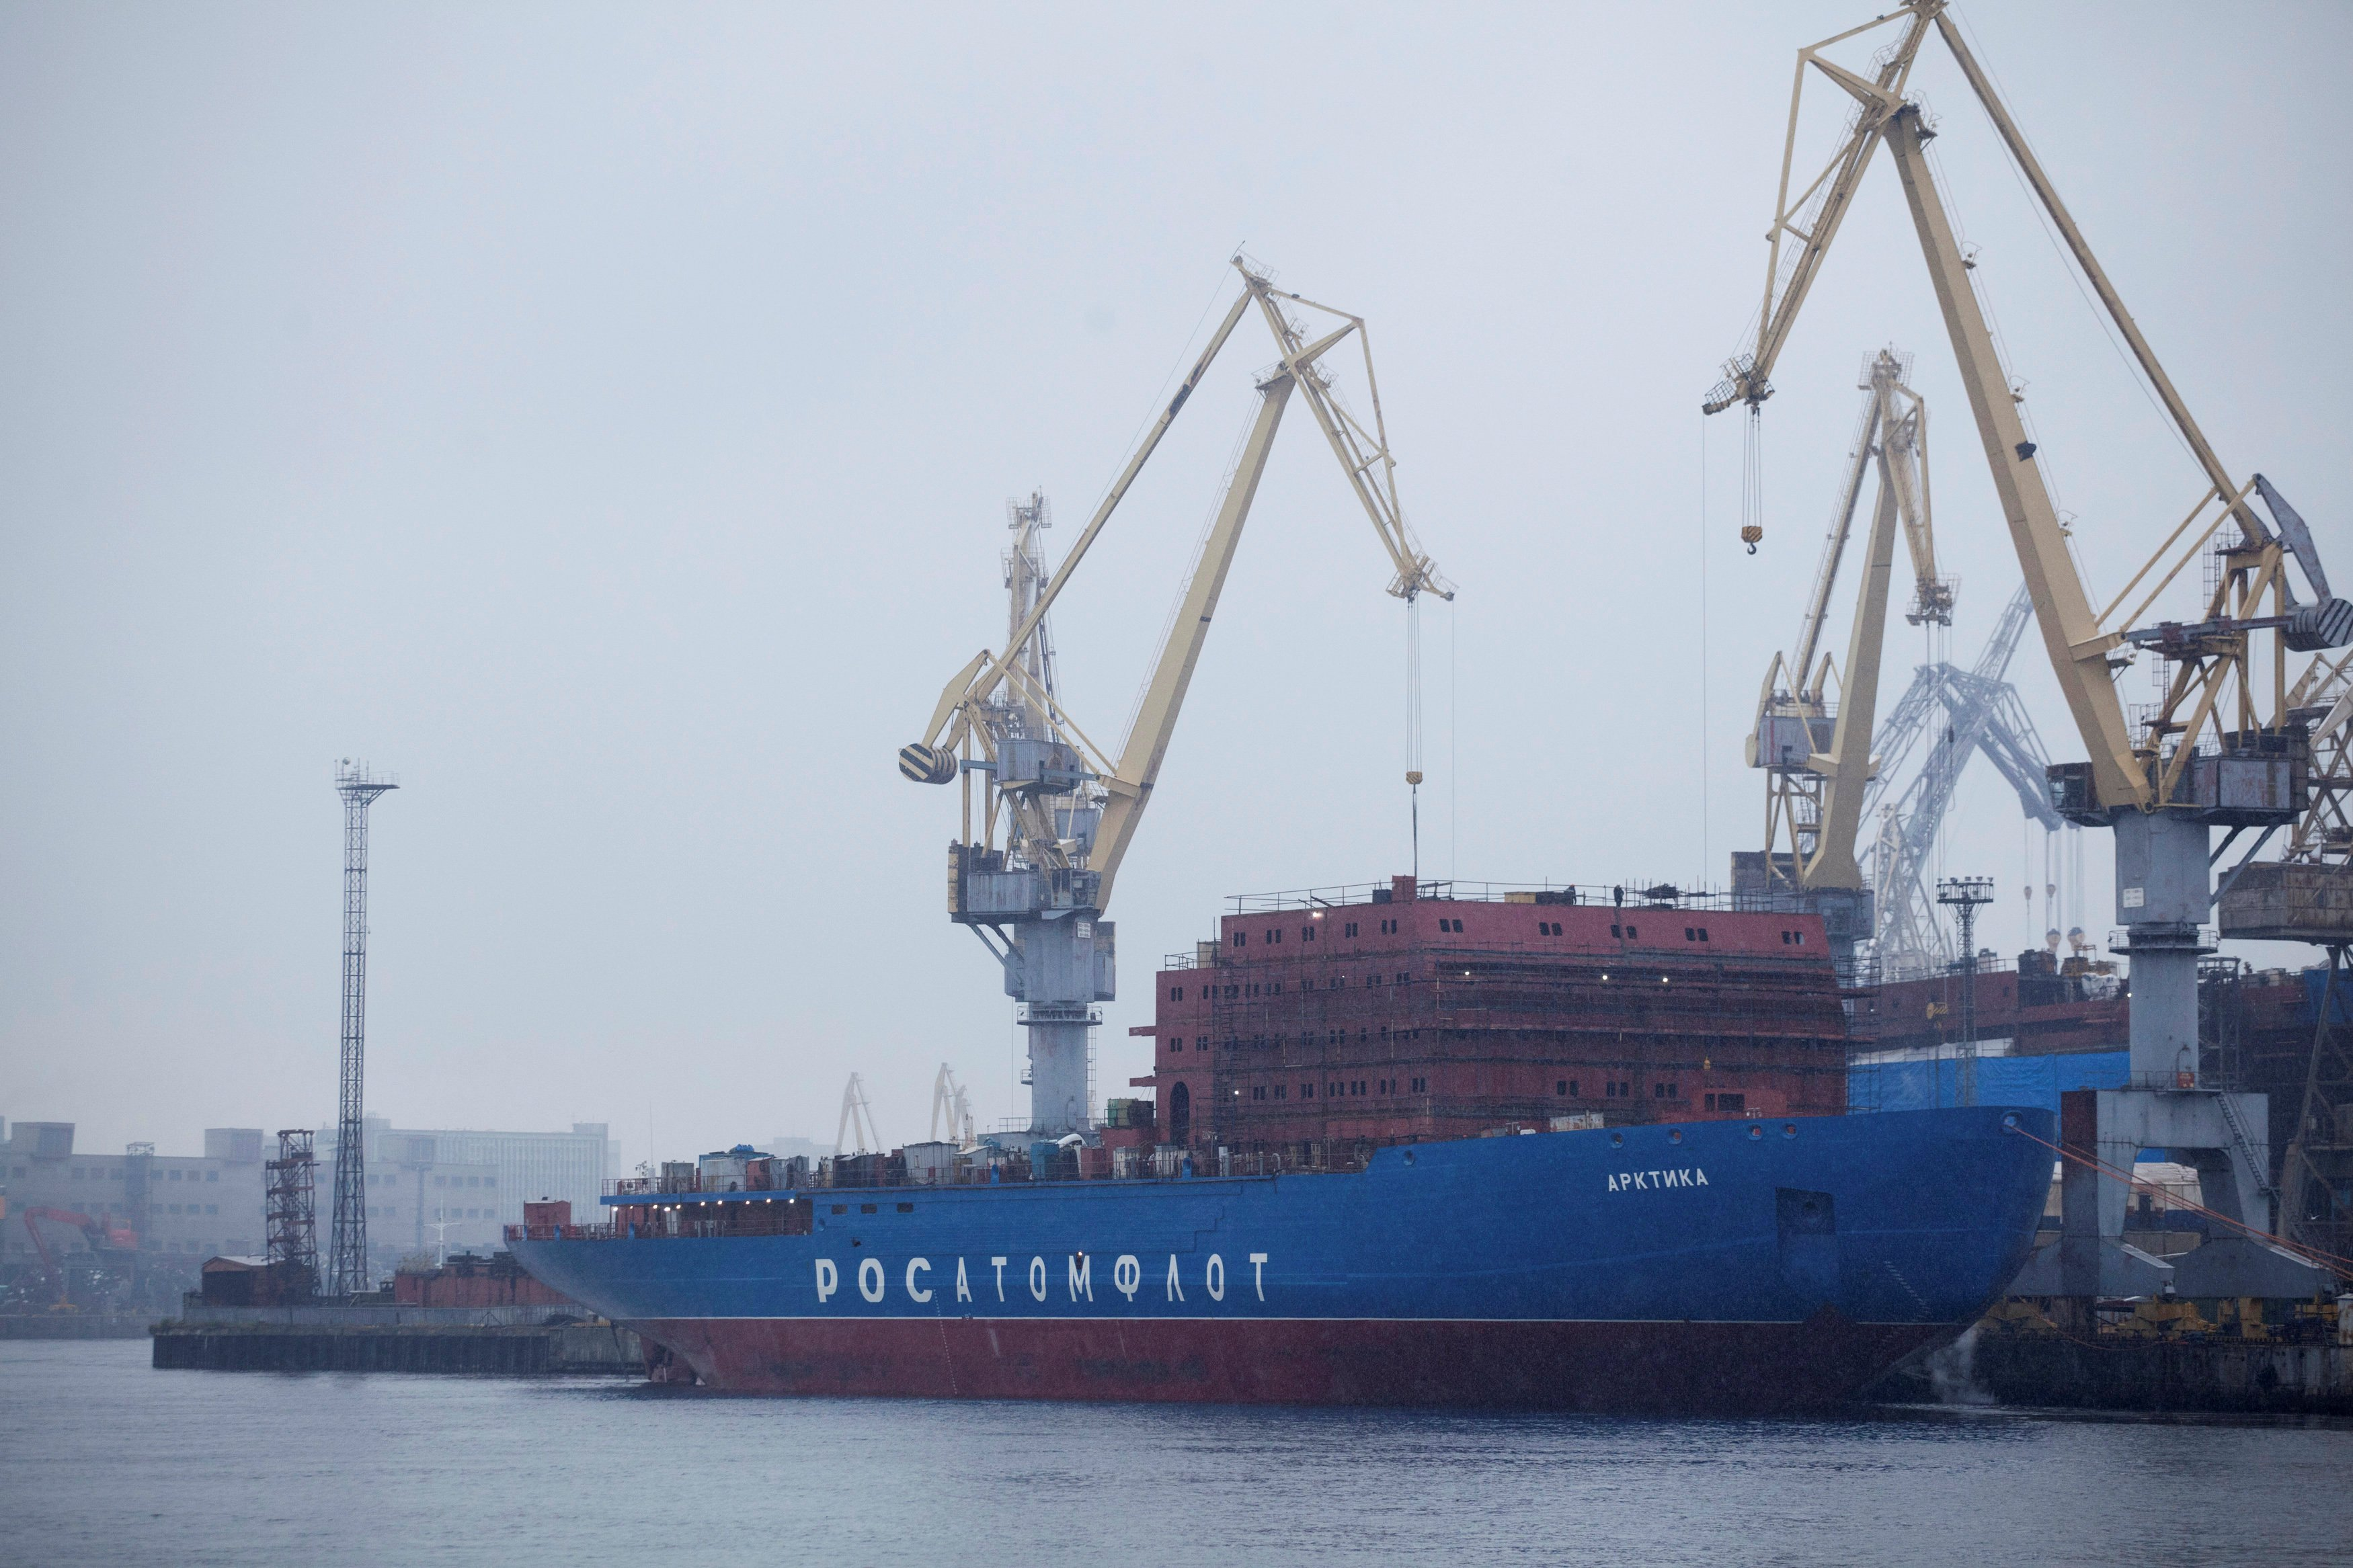 Russia looks to add new nuclear icebreaking capacity